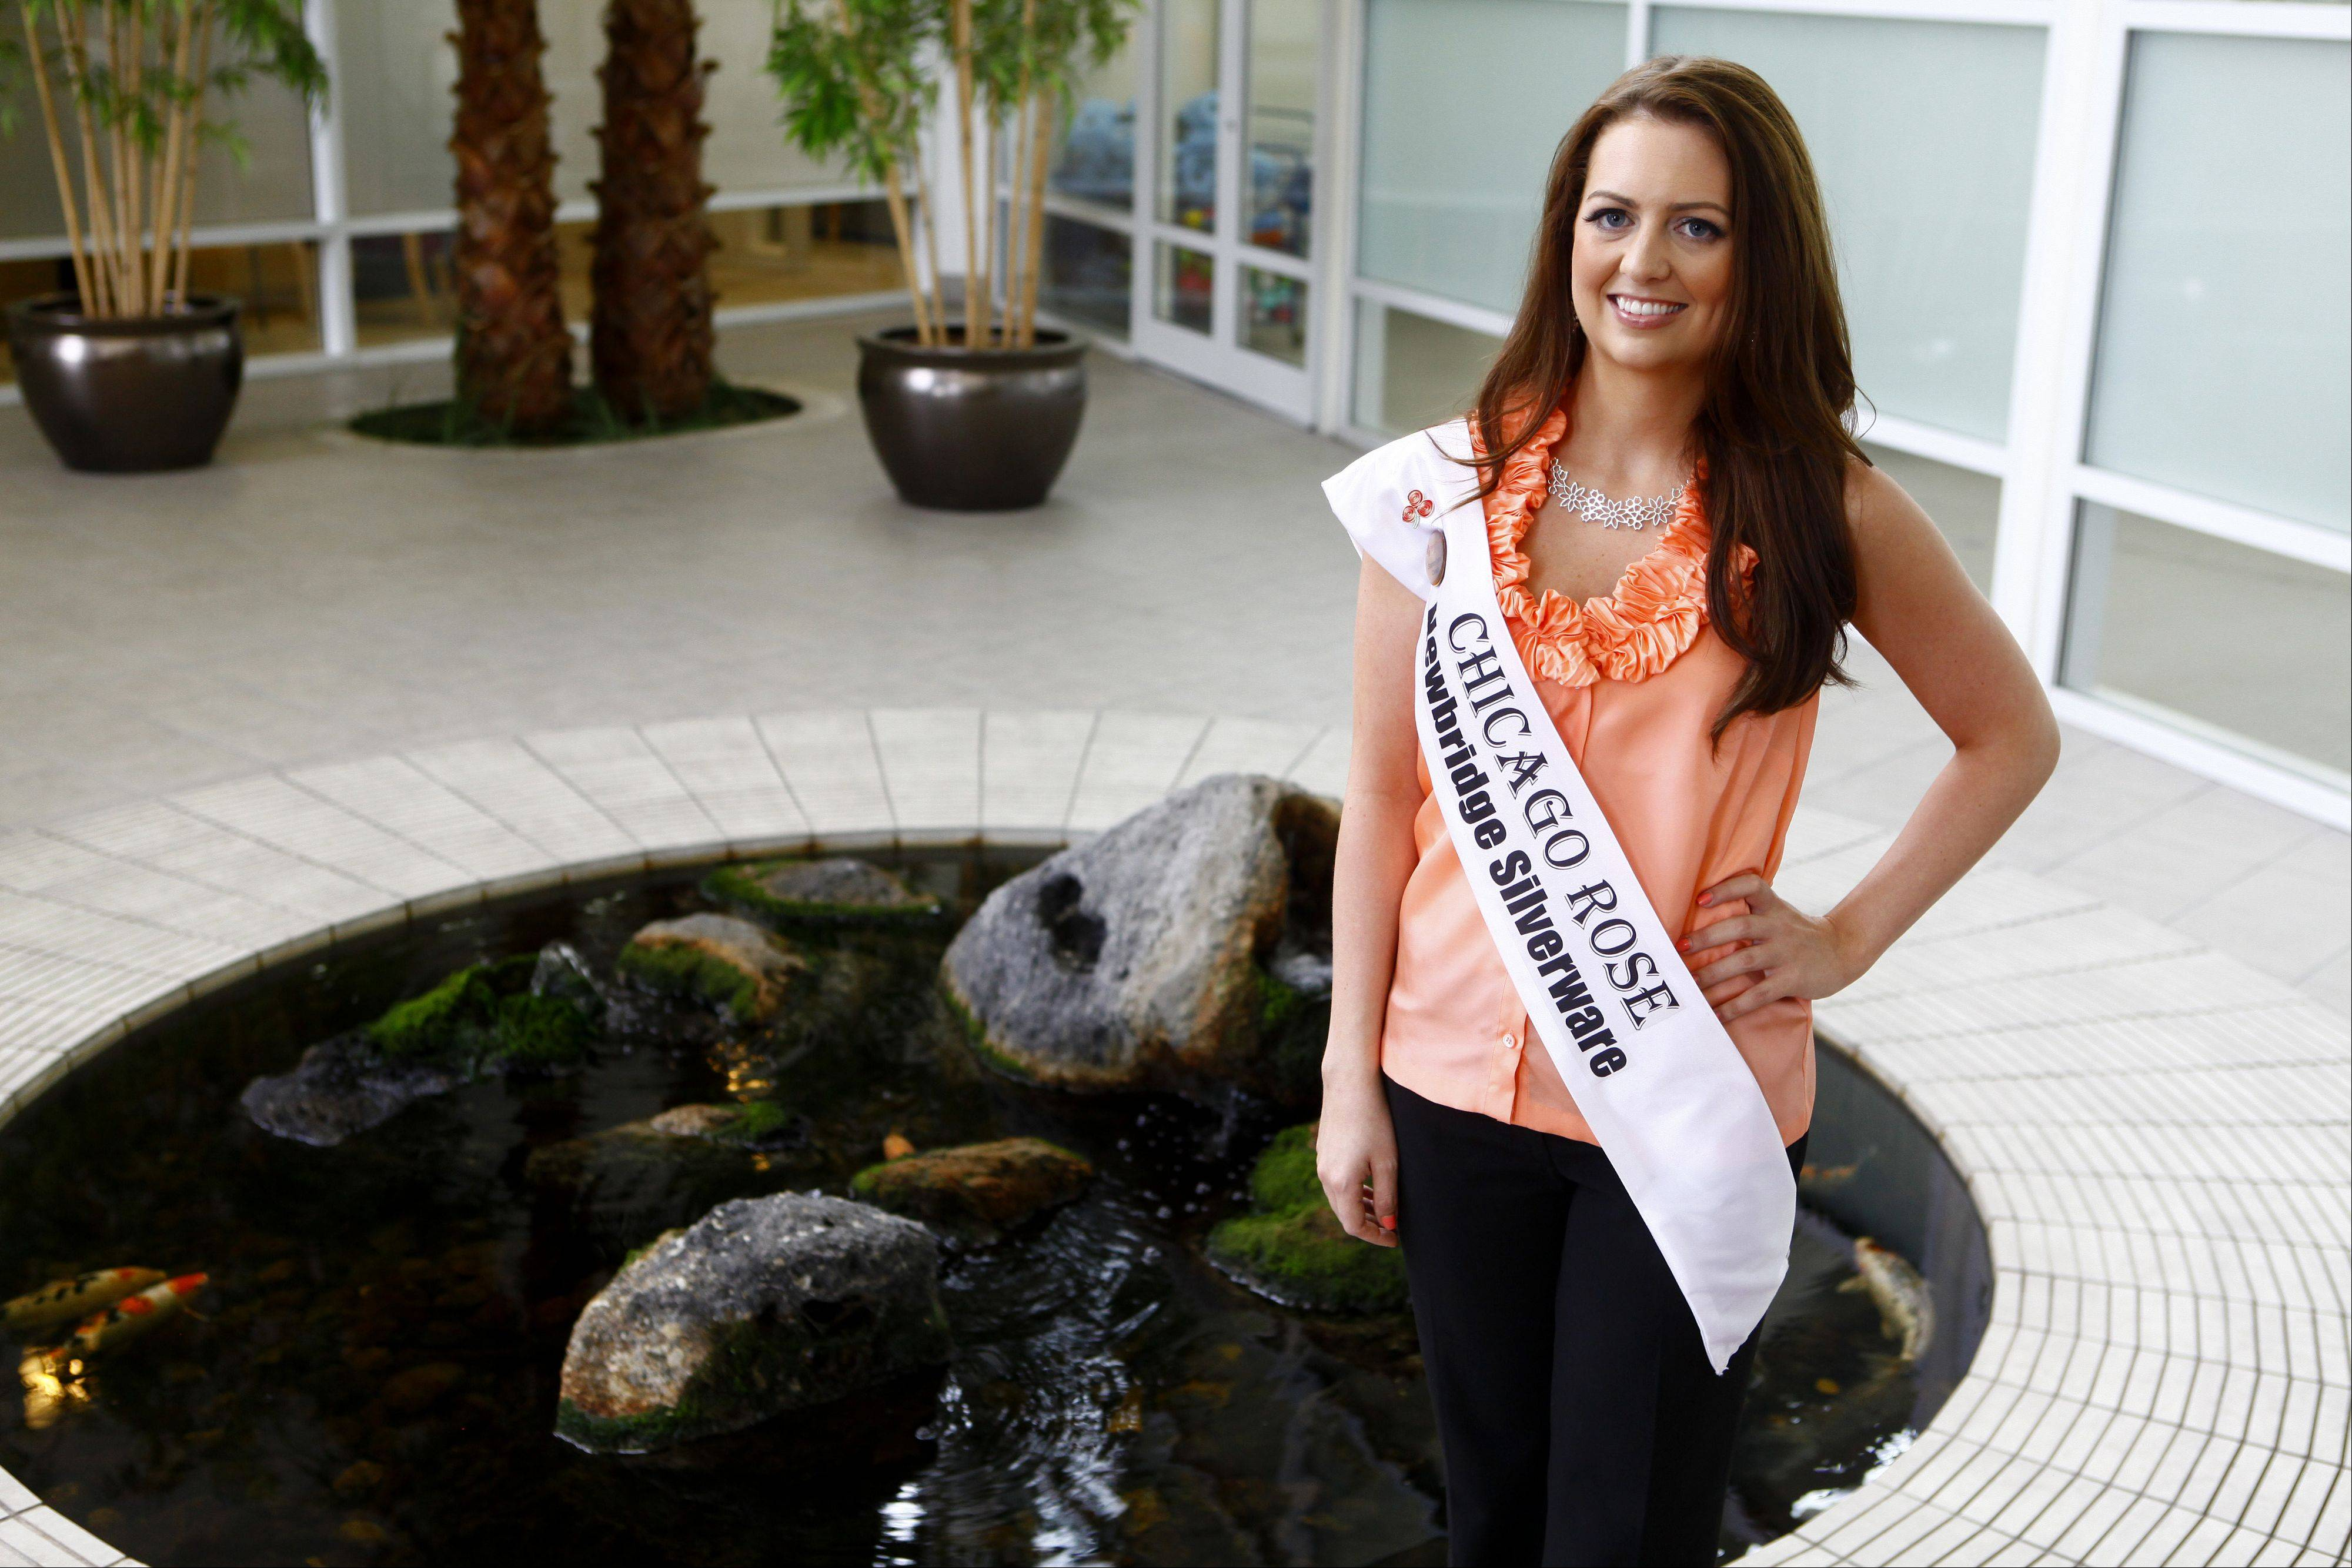 Siobhan Carroll, of Arlington Heights, will be representing Chicago�s Irish community in next month�s finals of the Rose of Tralee in Ireland. Carroll is one of 32 finalists from all over the world chosen for the finals.